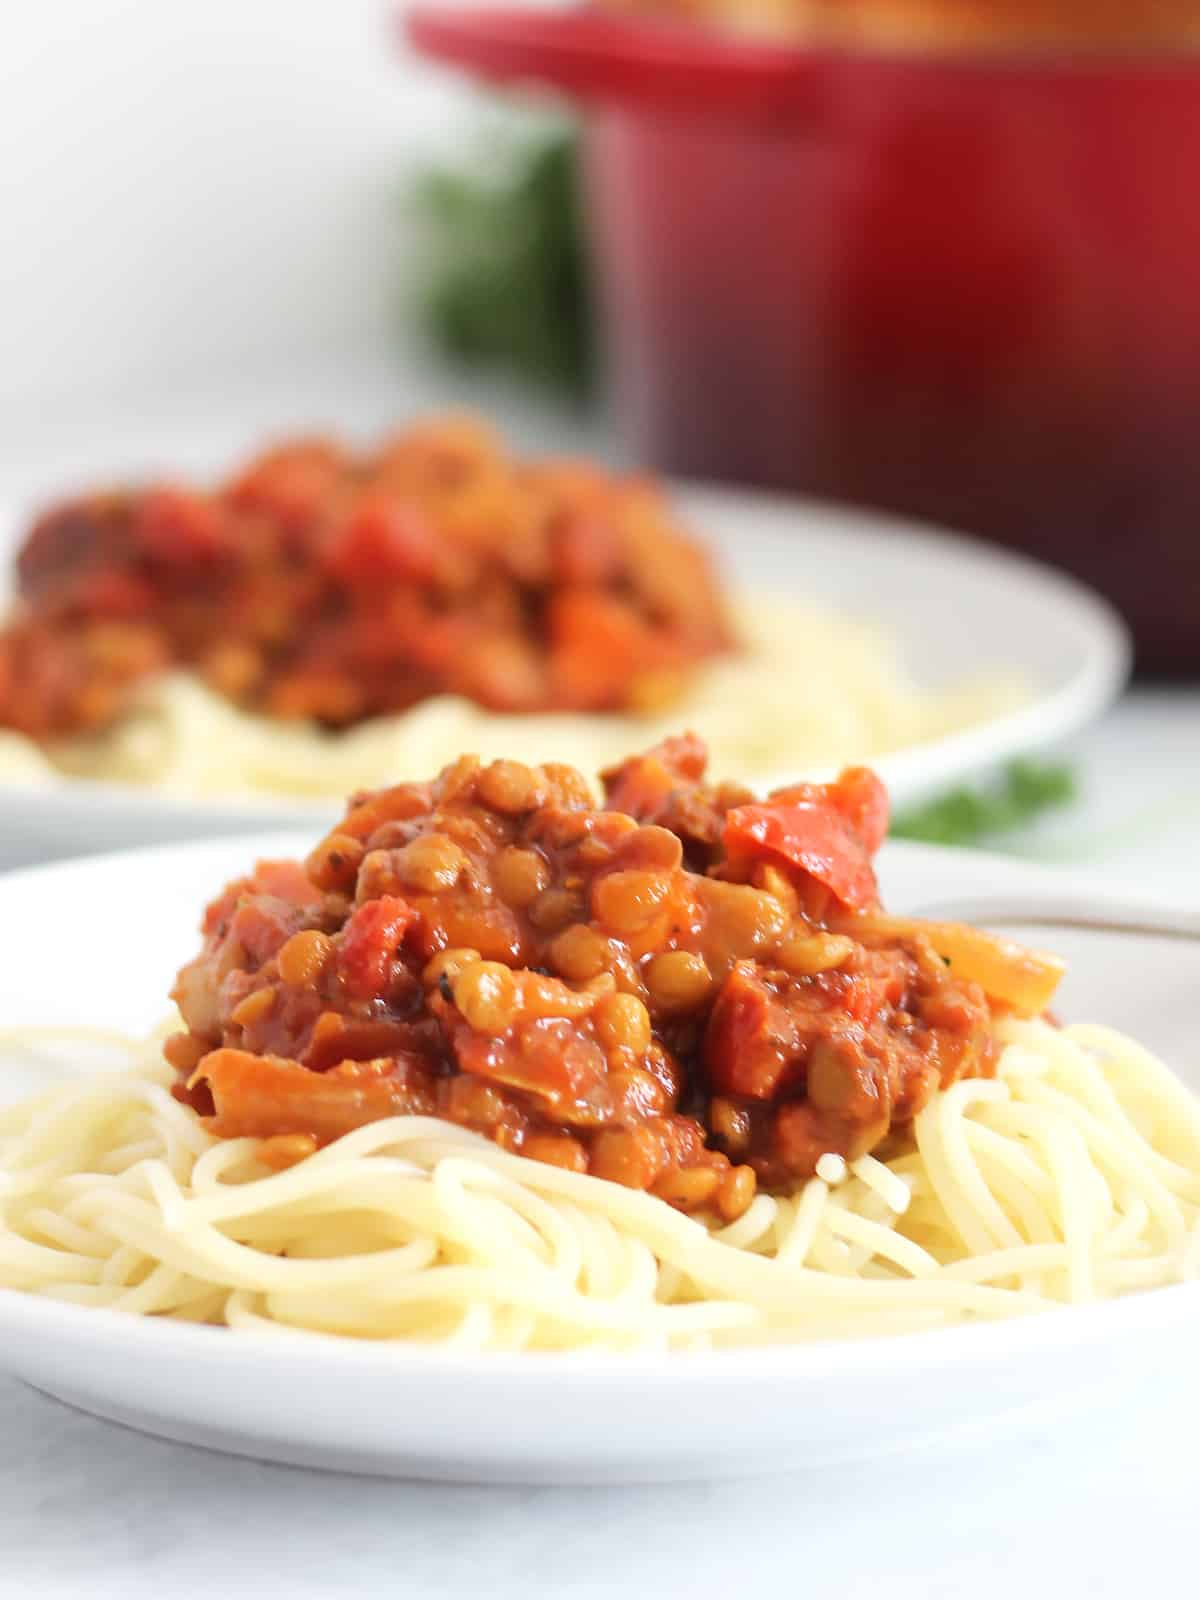 Close up of the roasted vegetable lentil bolgnese on top of some spaghetti on a white plate.